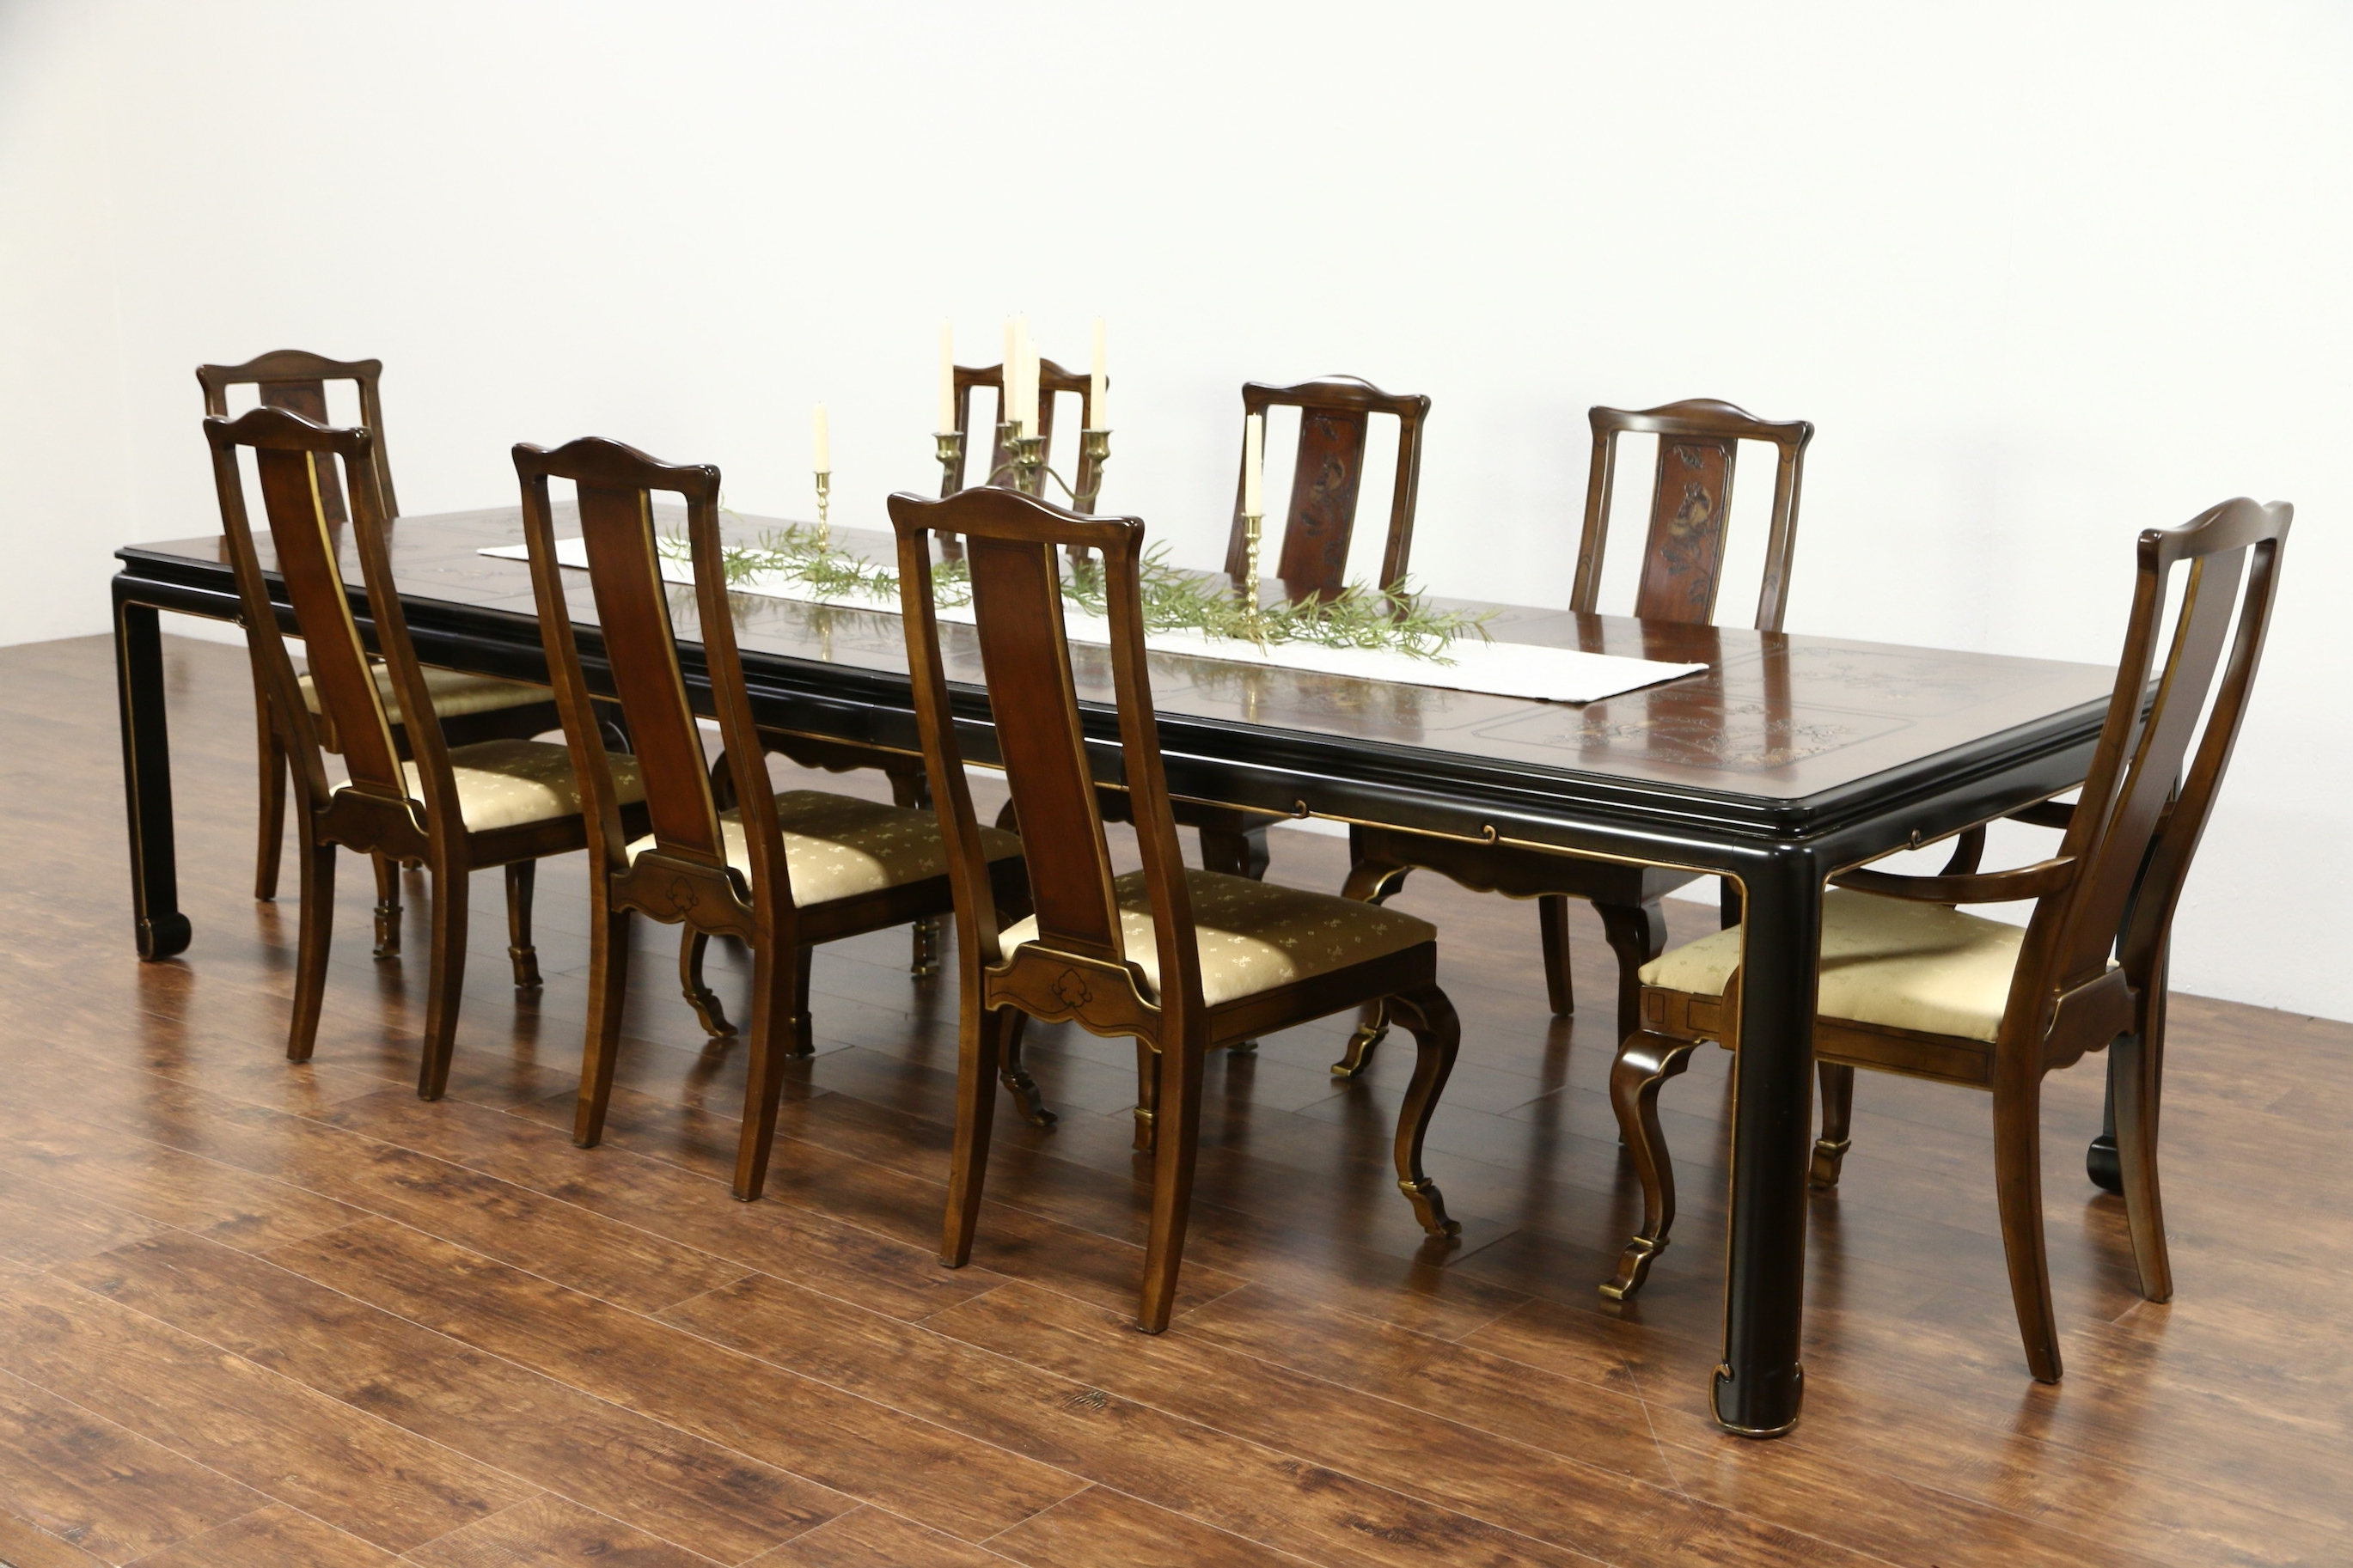 Dining Tables With 8 Chairs Throughout Well Known Sold – Drexel Heritage Connoisseur Chinese Motif Vintage Dining Set (View 5 of 25)